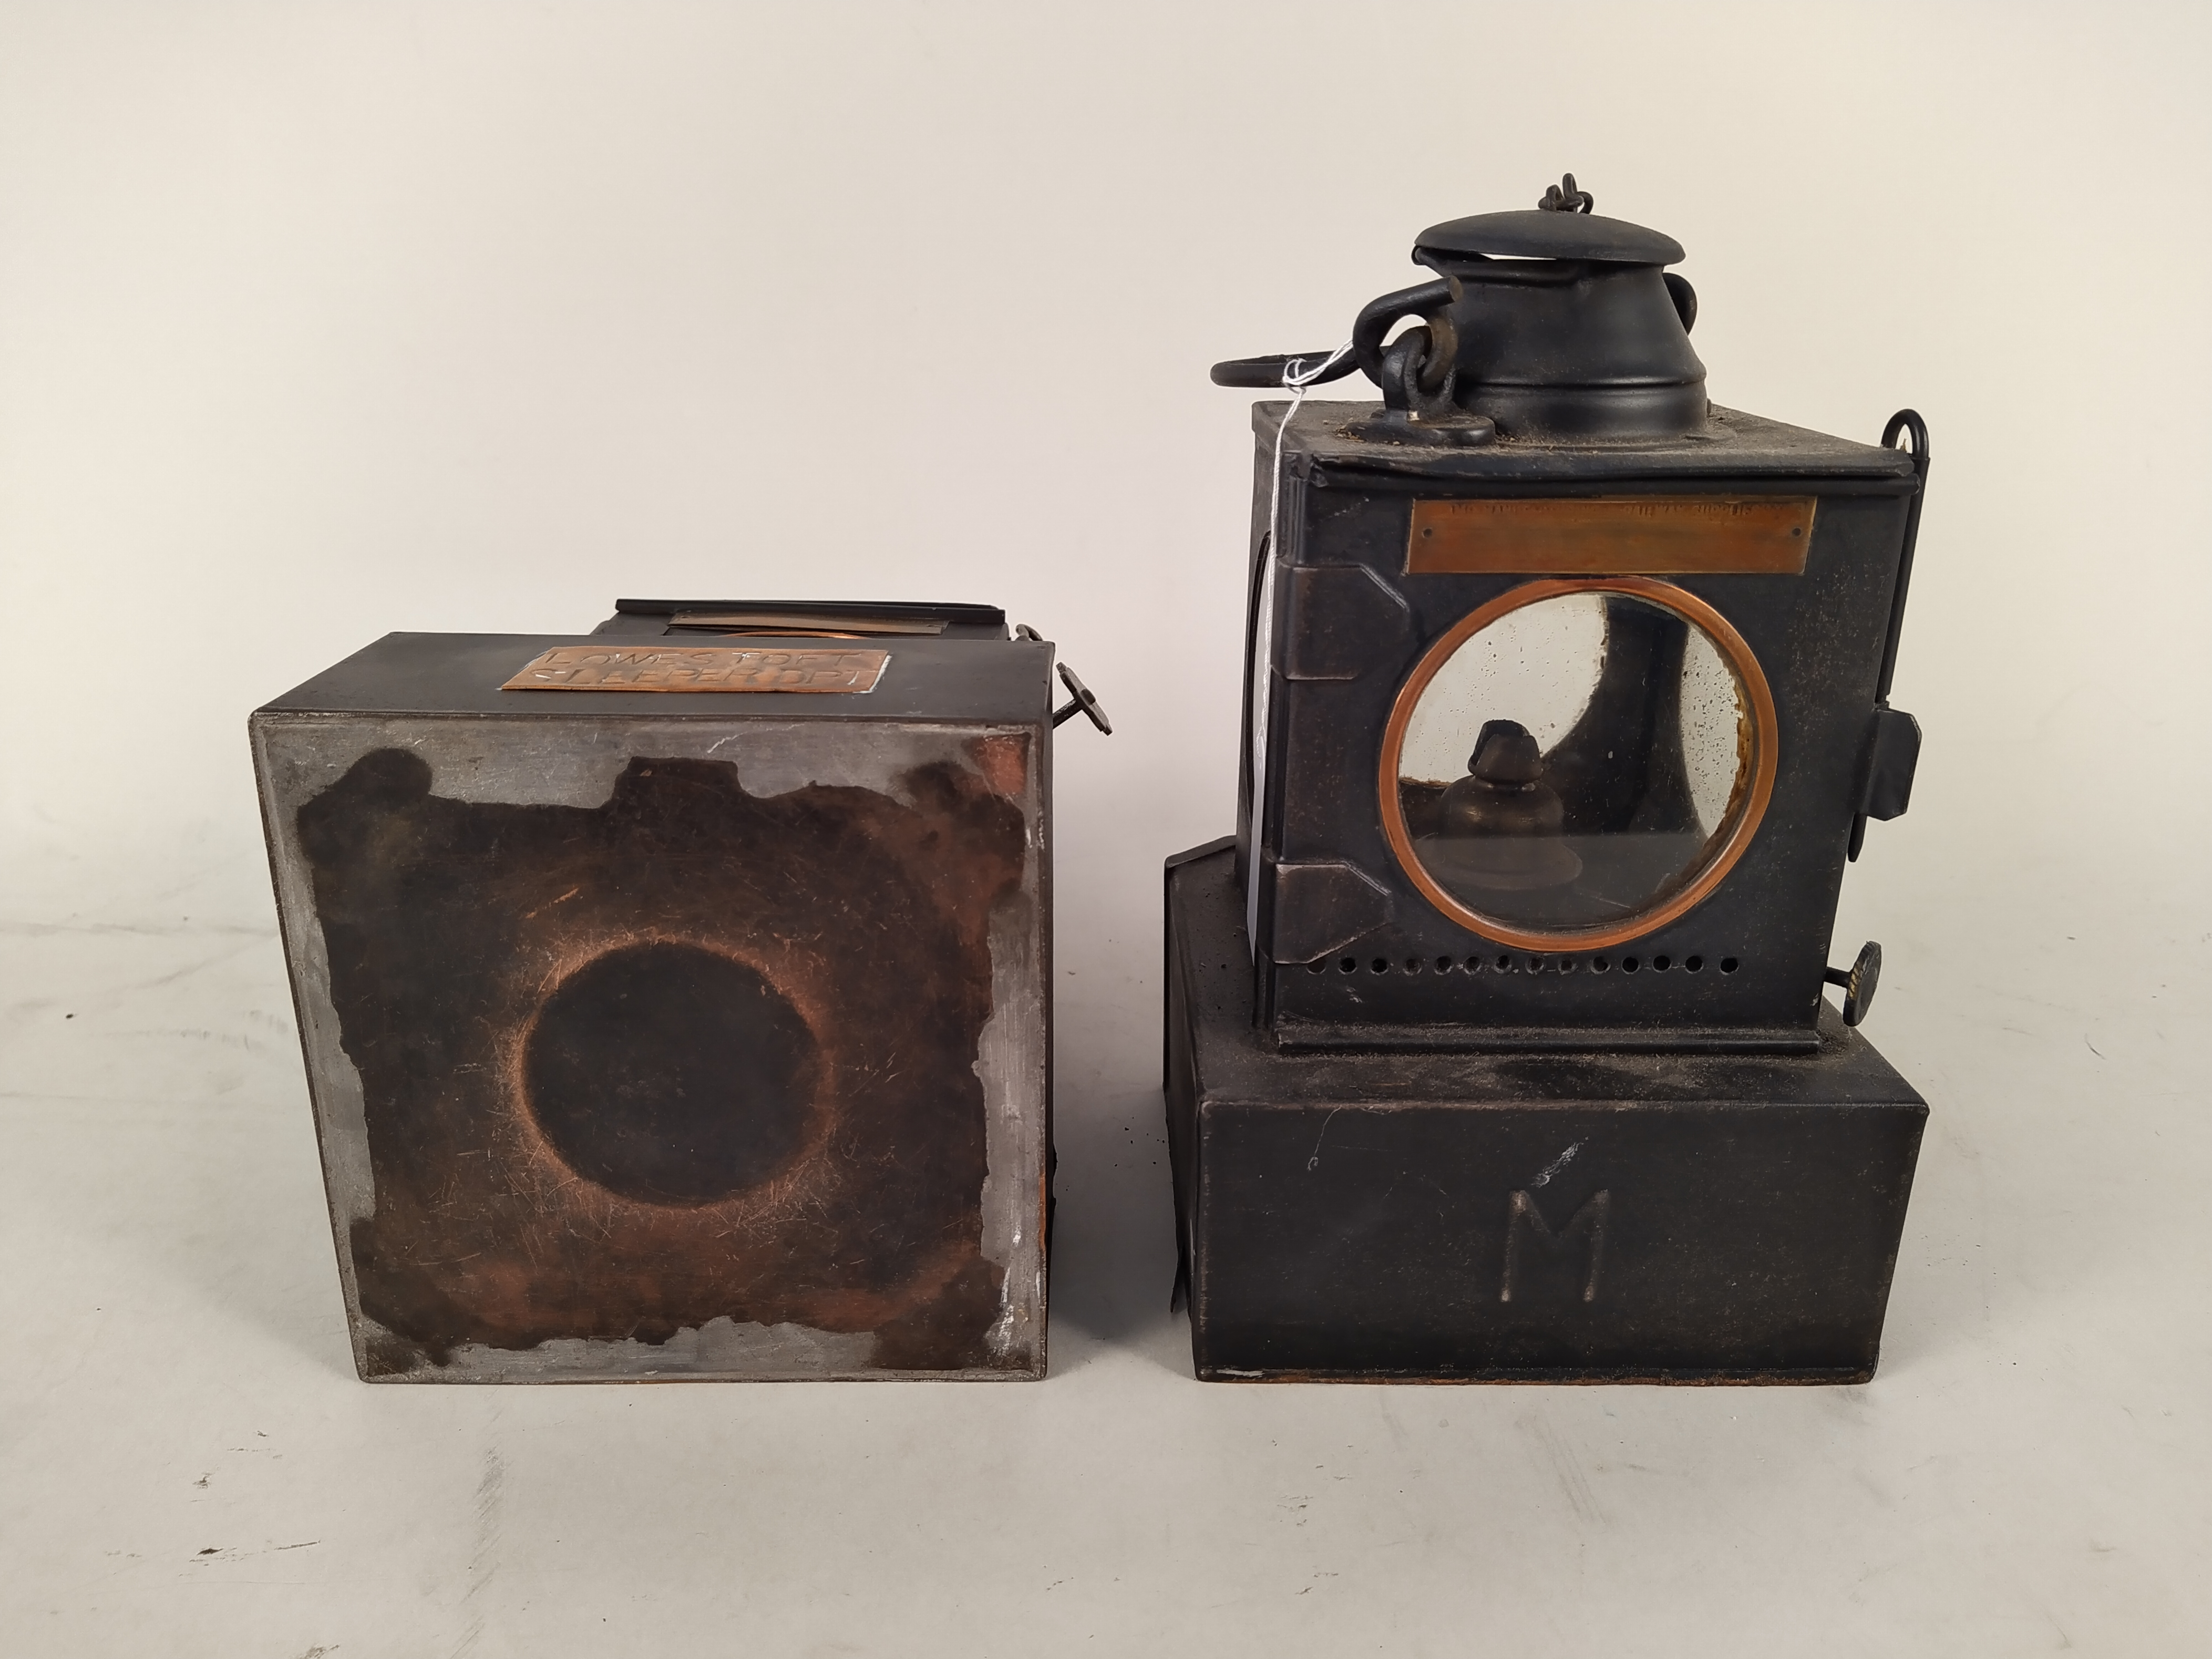 Two Welch patent early 20th Century railway lamps, - Image 3 of 3